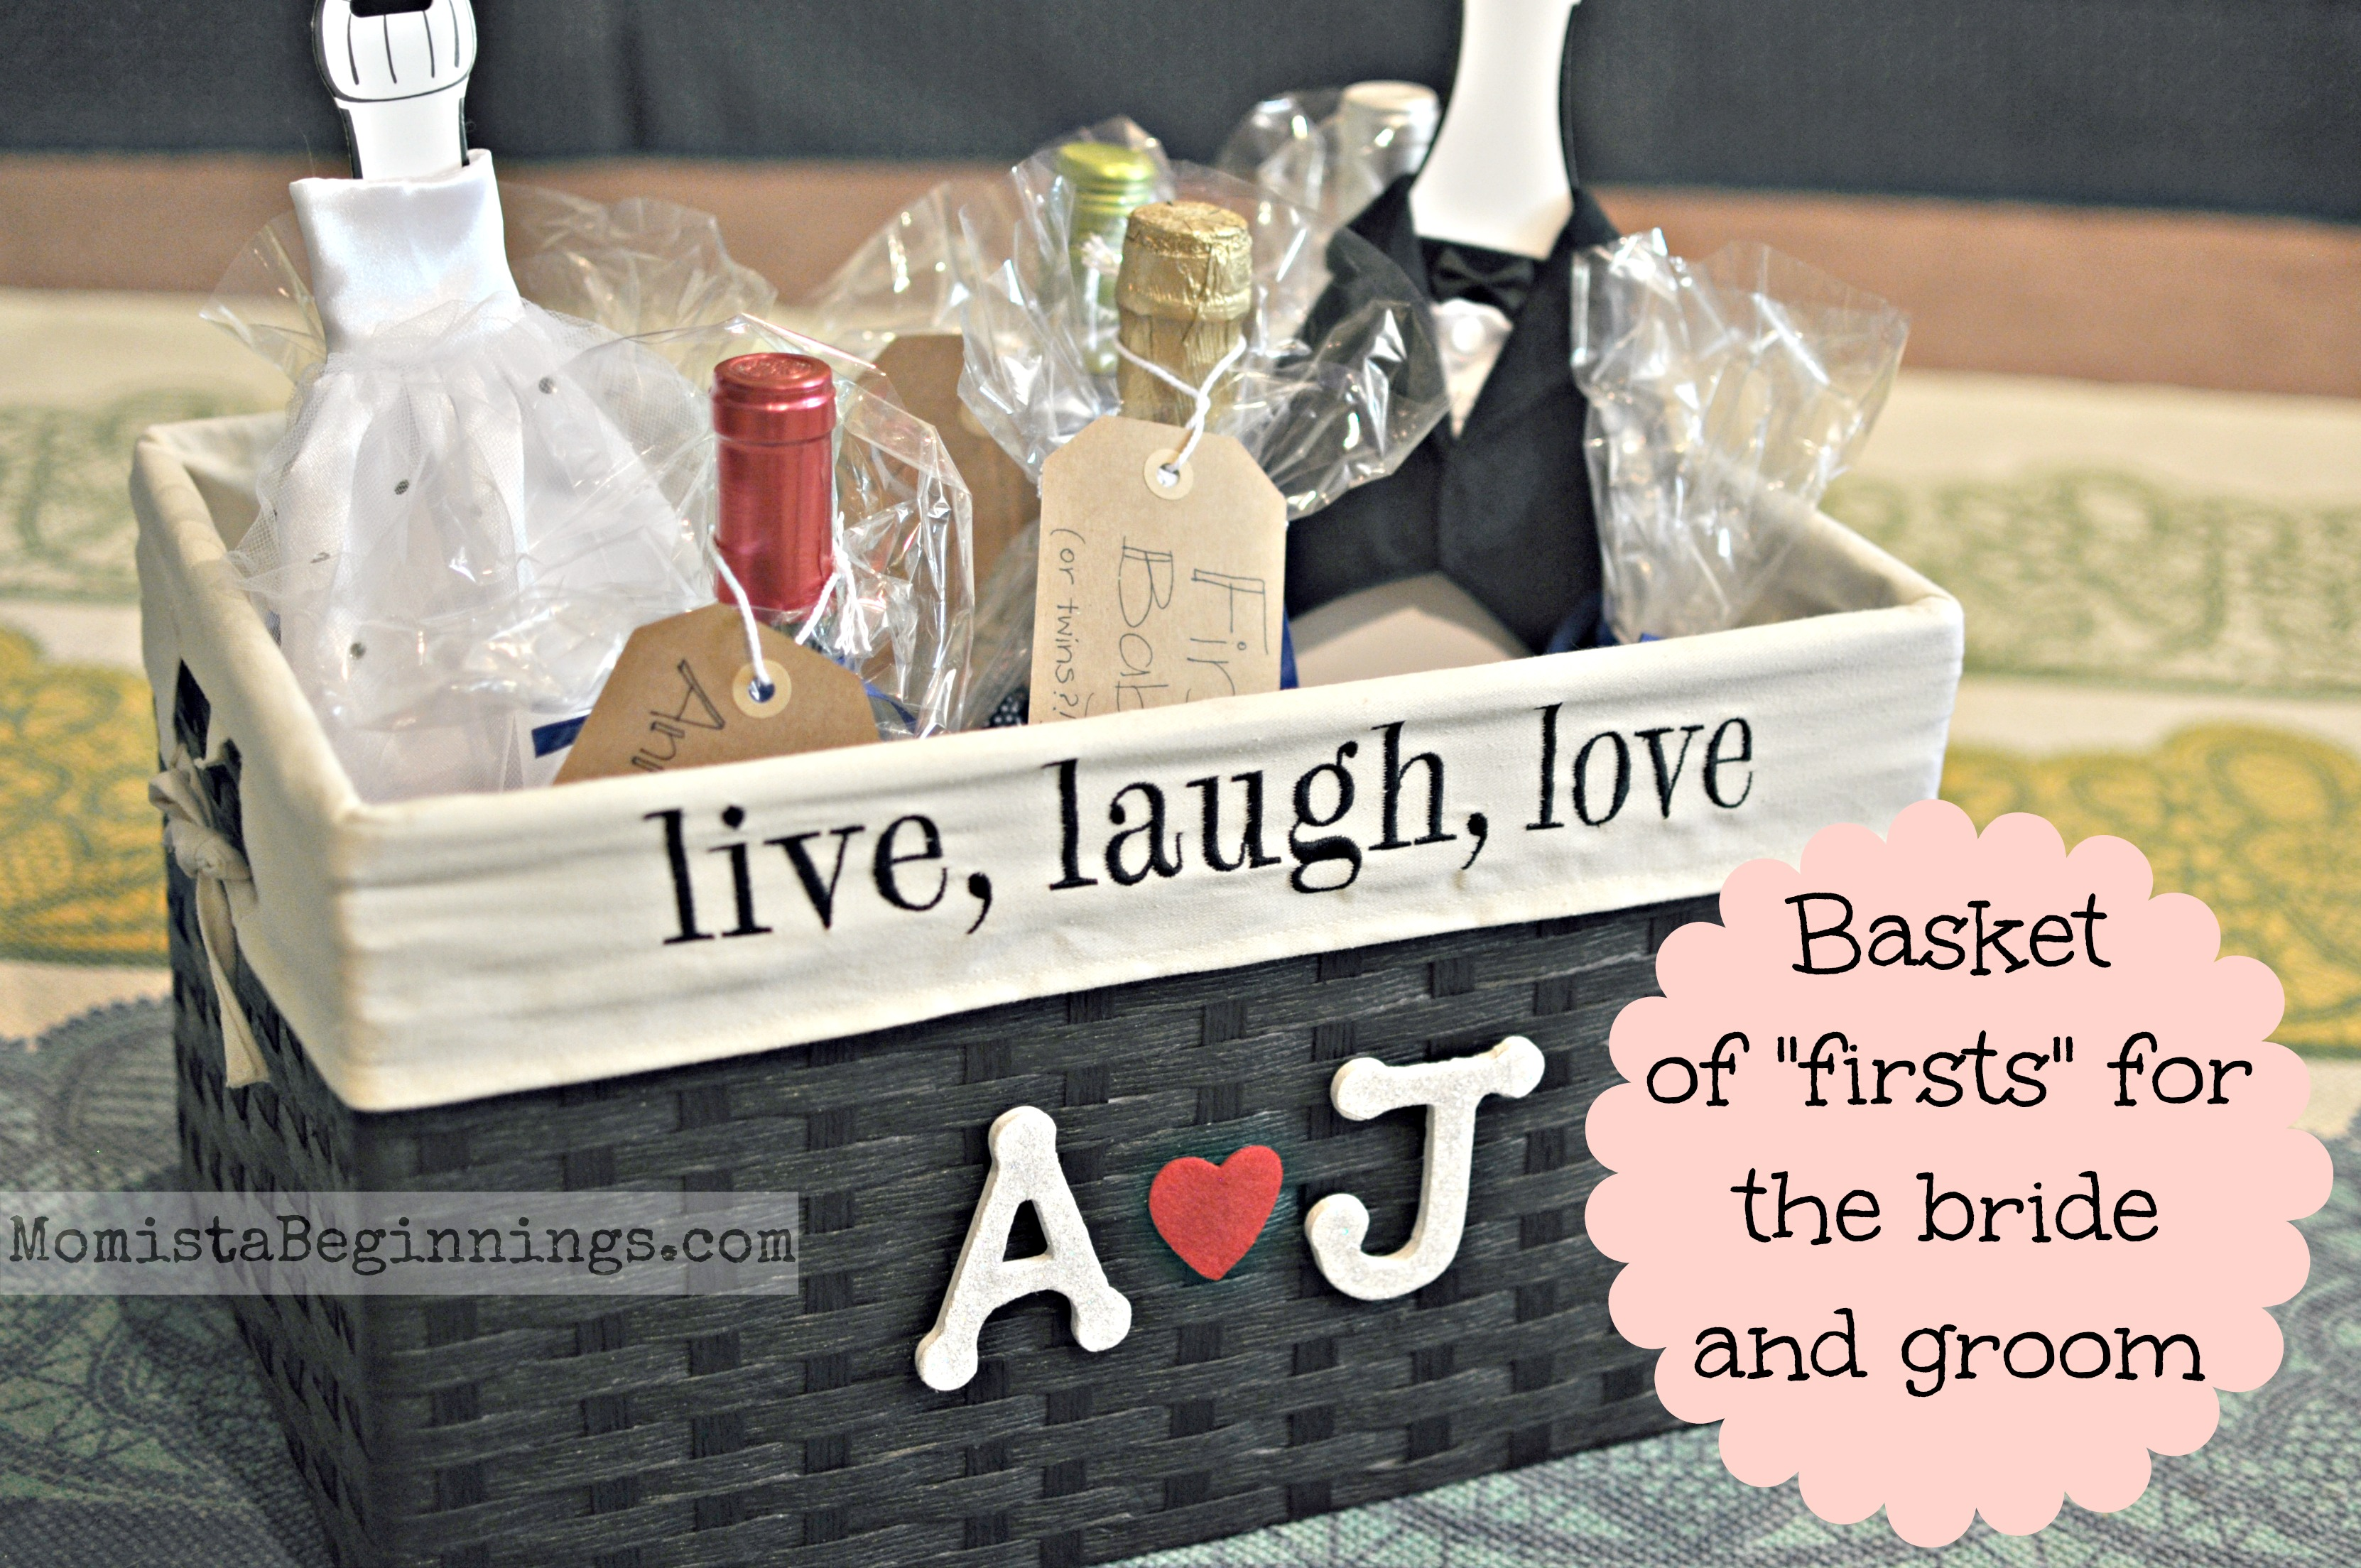 A Wedding Gift For The Bride : Basket Of \Firsts\ For The Bride And Groom {DIY} Momista Beginnings ...